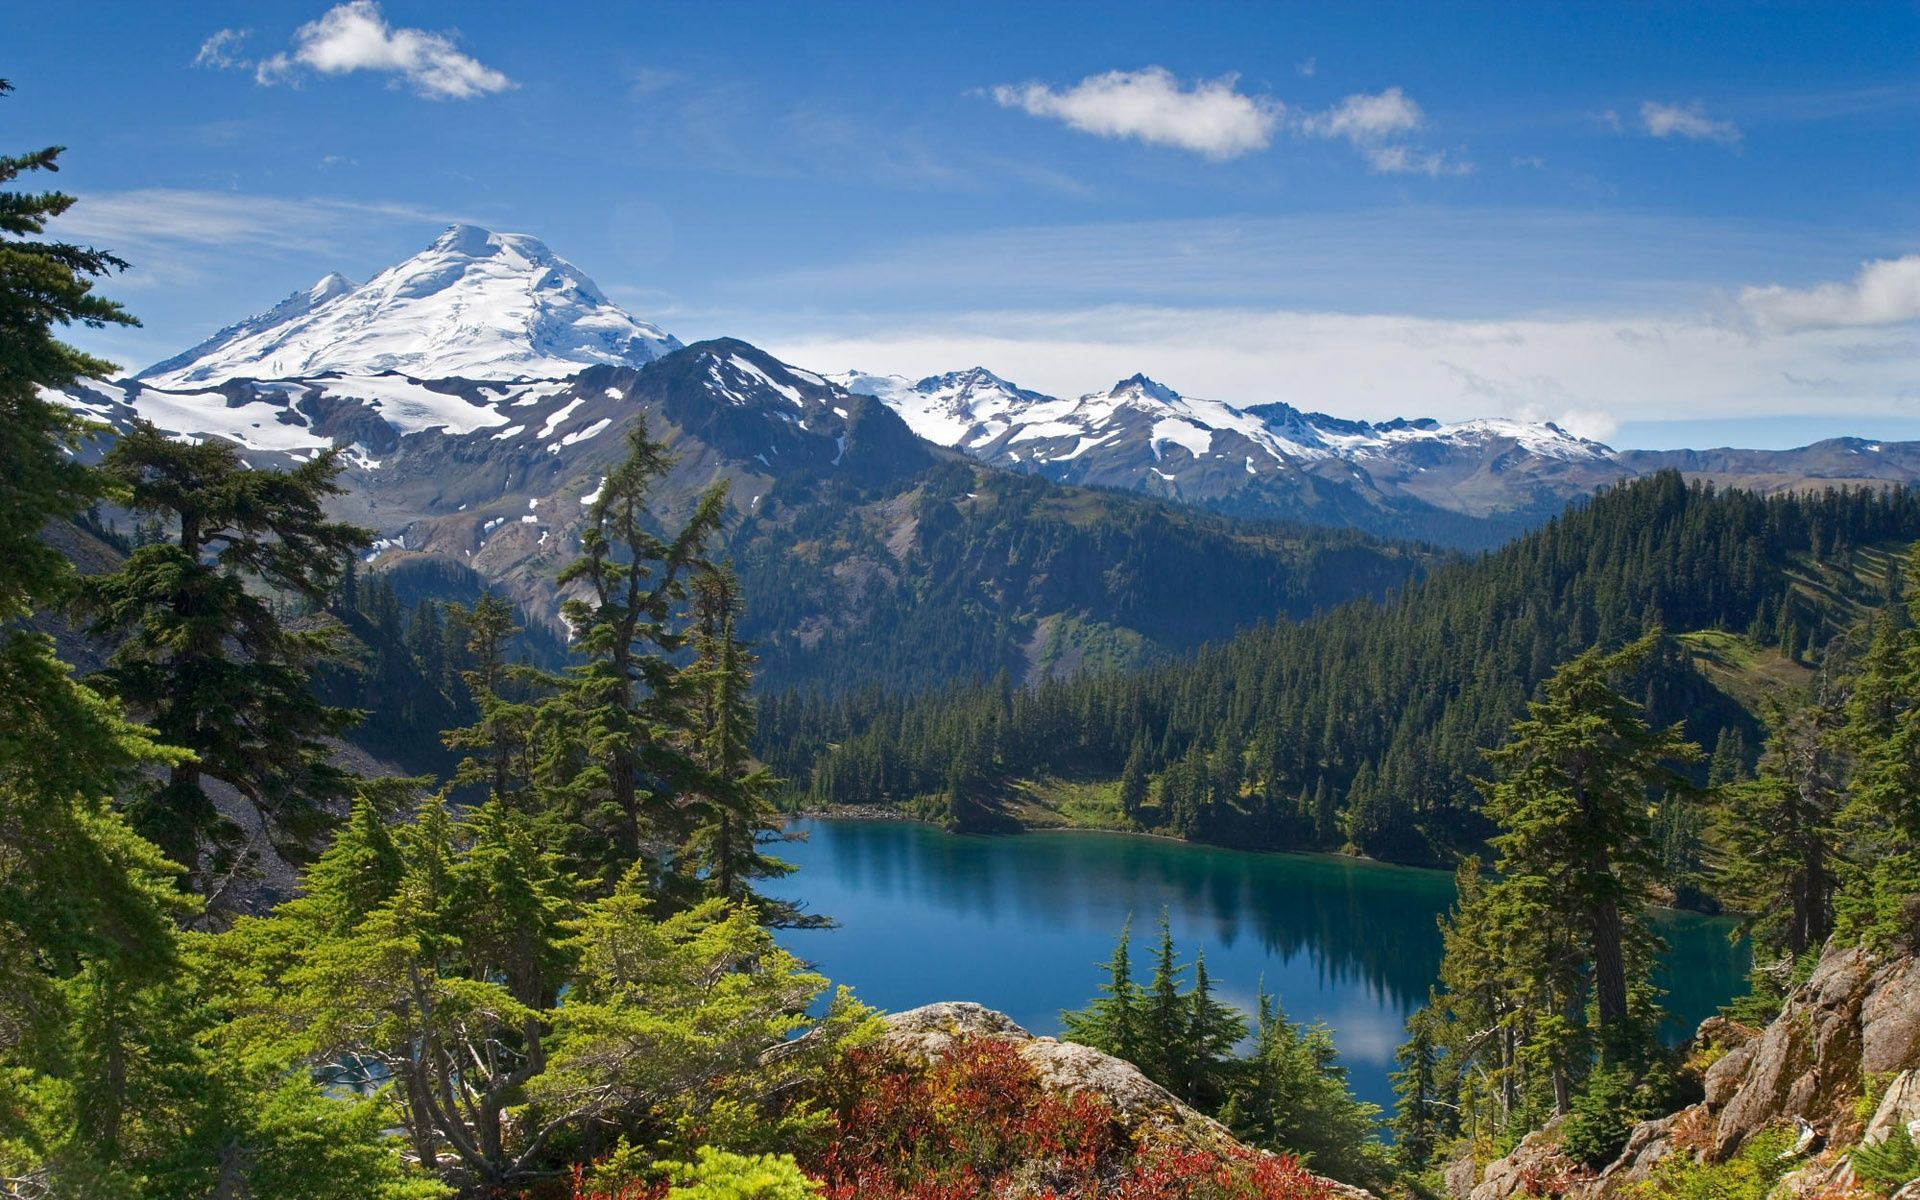 lake mountain forest desktop wallpapers and backgrounds imgstocks